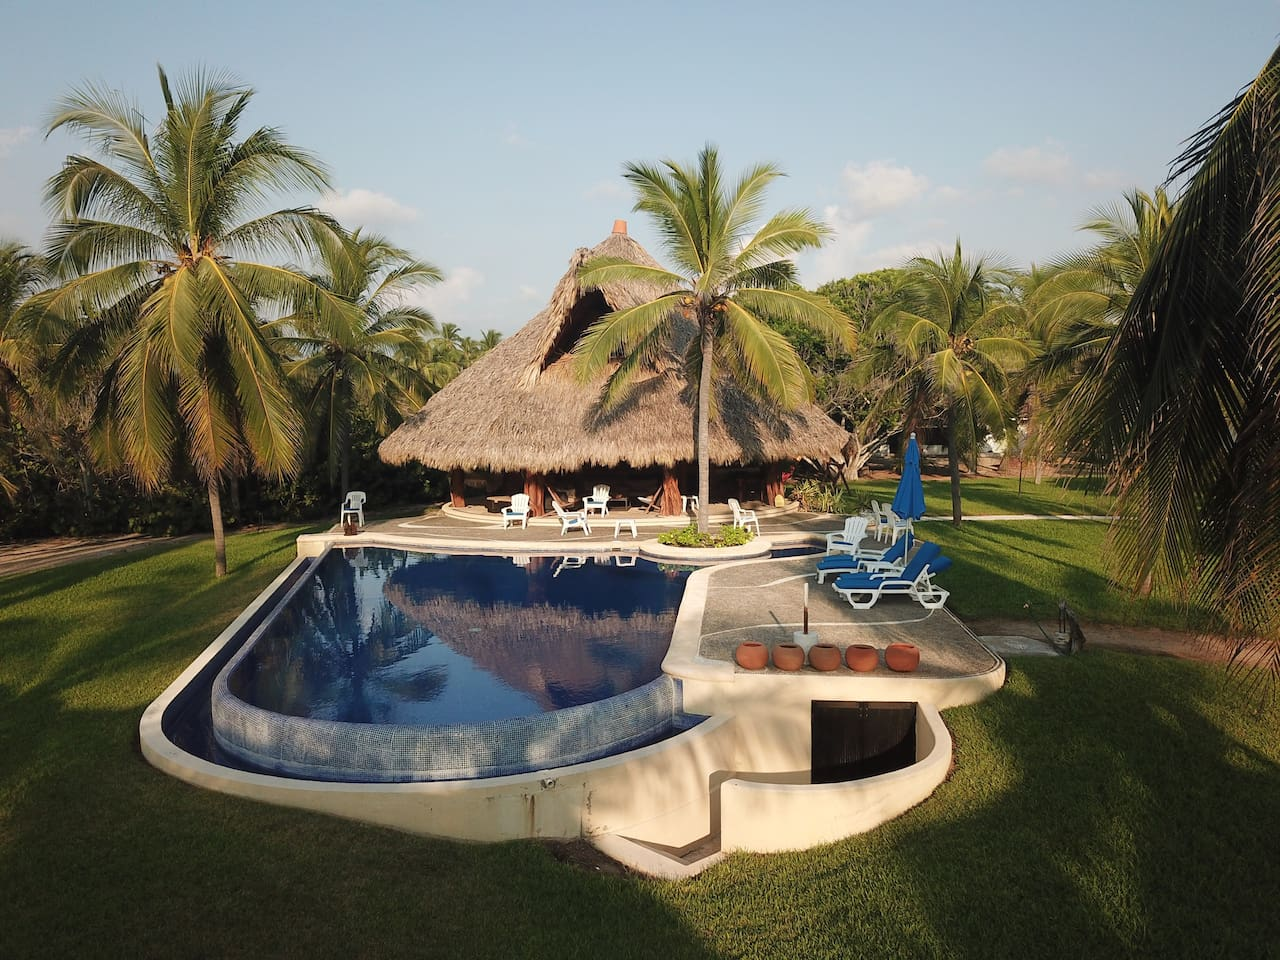 Aerial view of the pool and palapa.